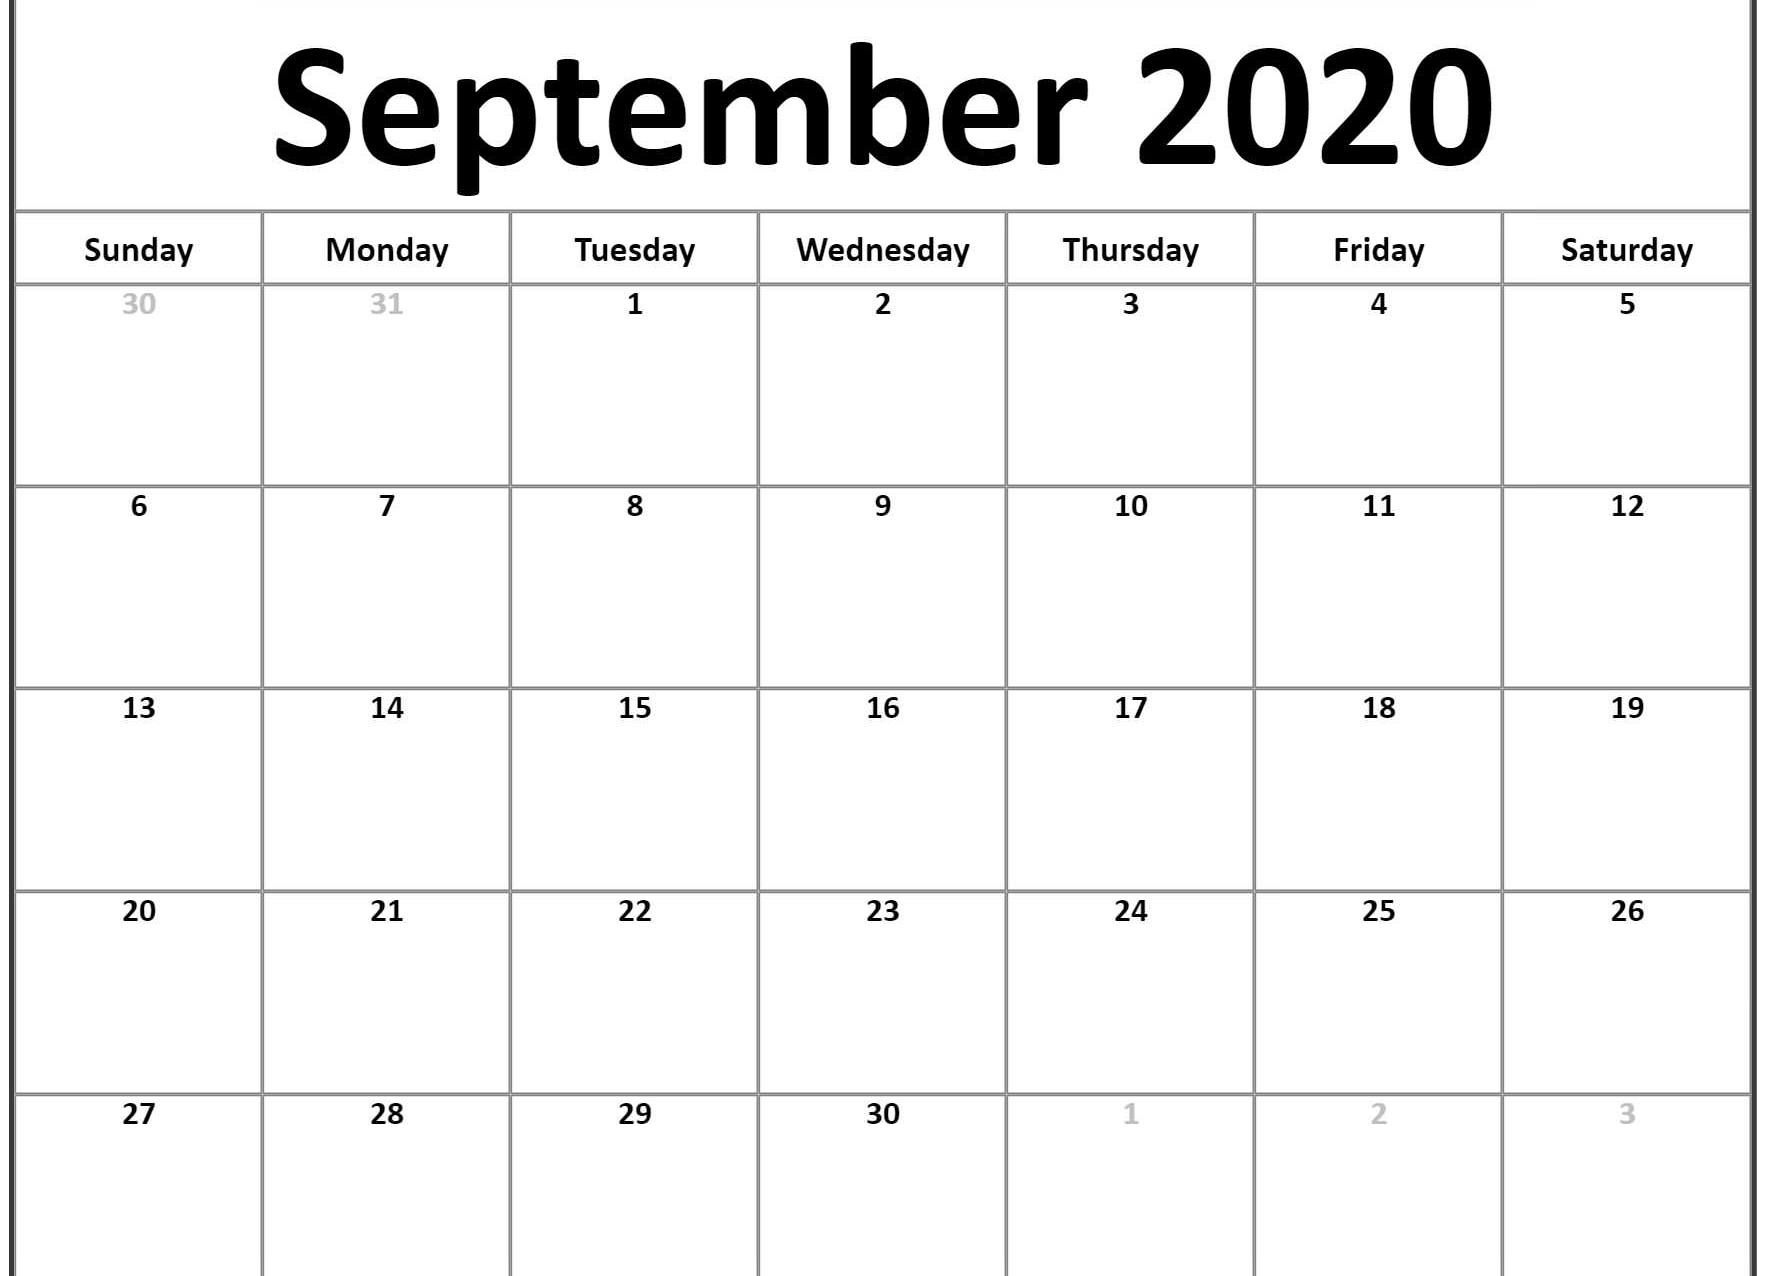 September 2020 Calendar Template In 2019 | Calendar Word for Free Printable Monthly Calendar September 2020